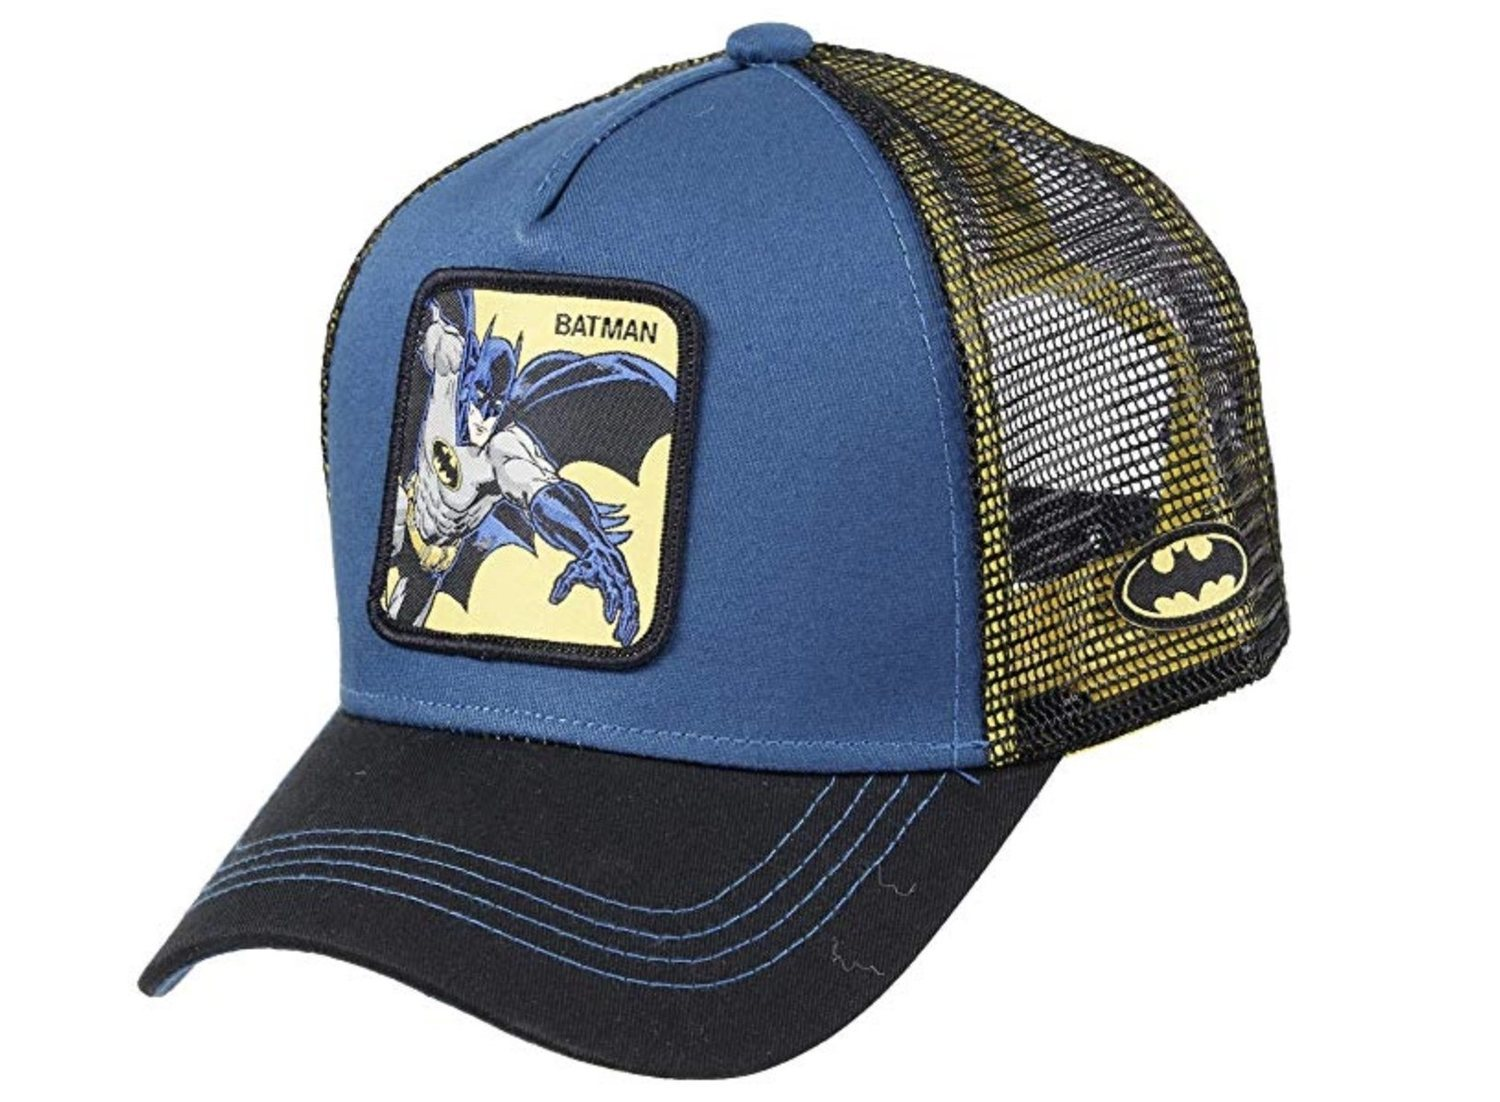 Gorra trucker de Batman.